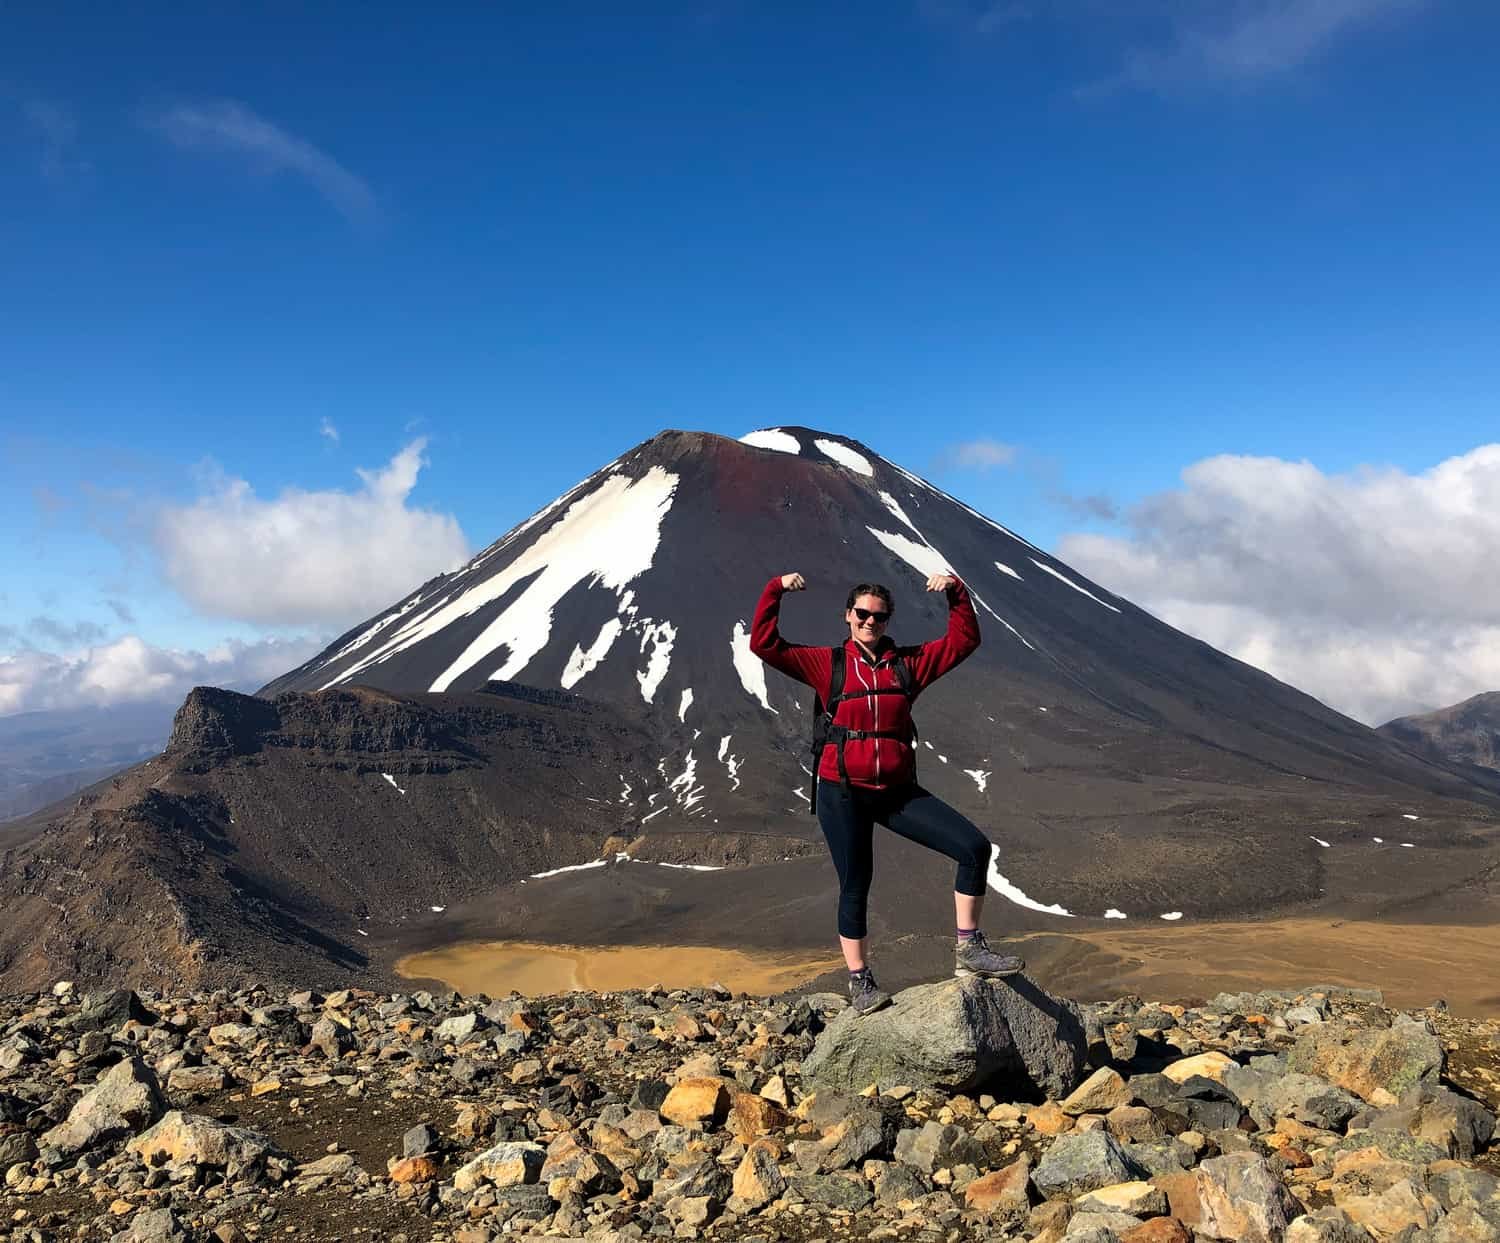 The Tongariro Crossing: Why You Should (Maybe Not) Hike 19.4 km